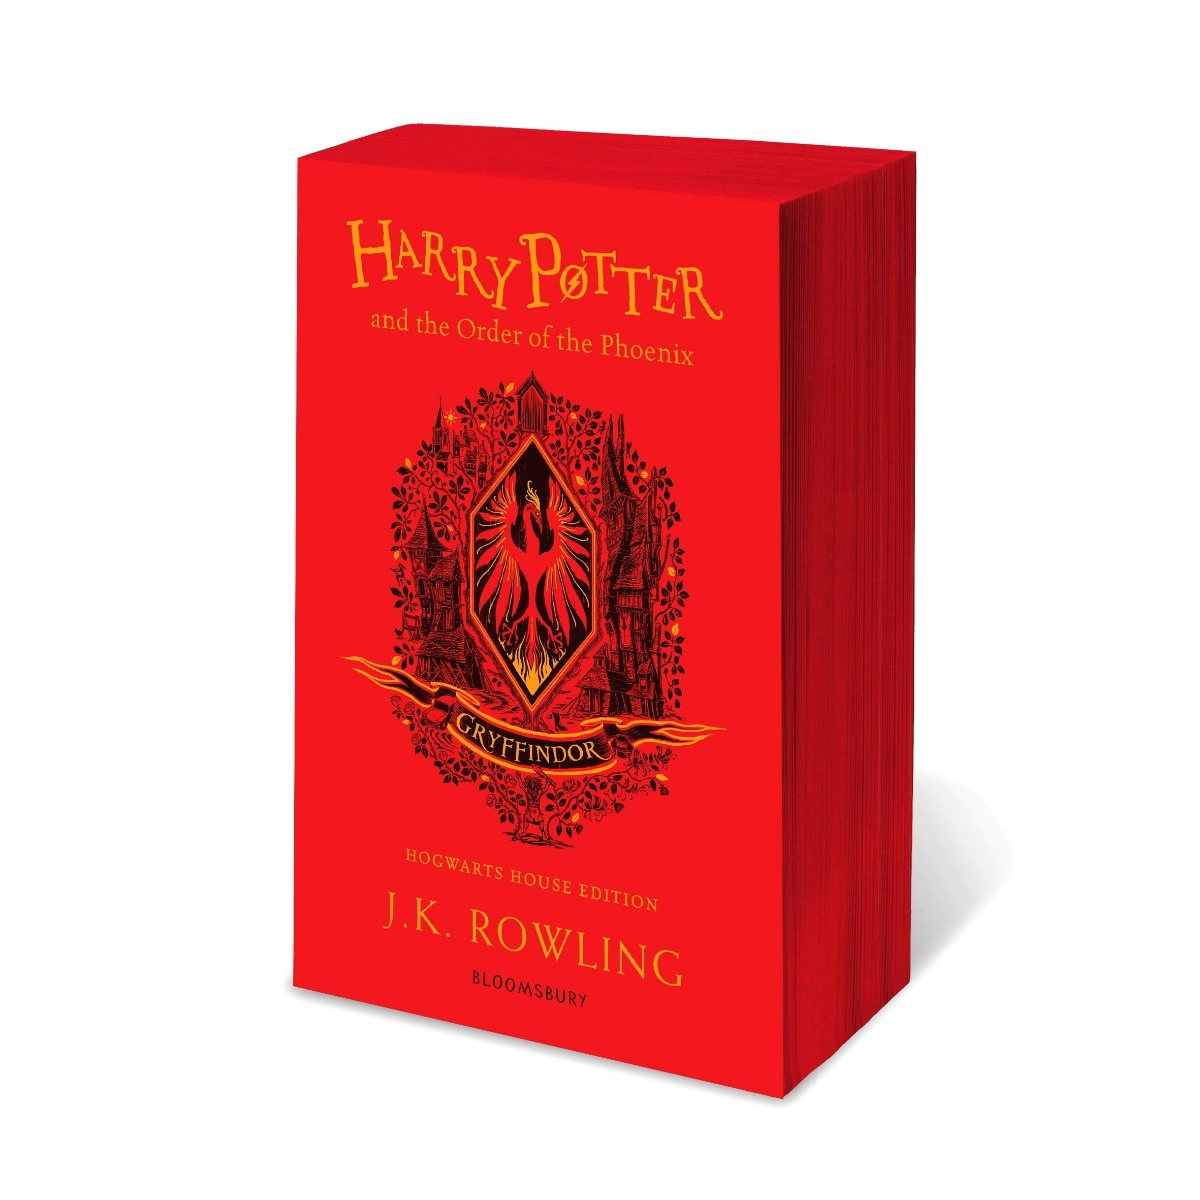 Harry Potter and the Order of the Phoenix - Gryffindor House Edition Paperback